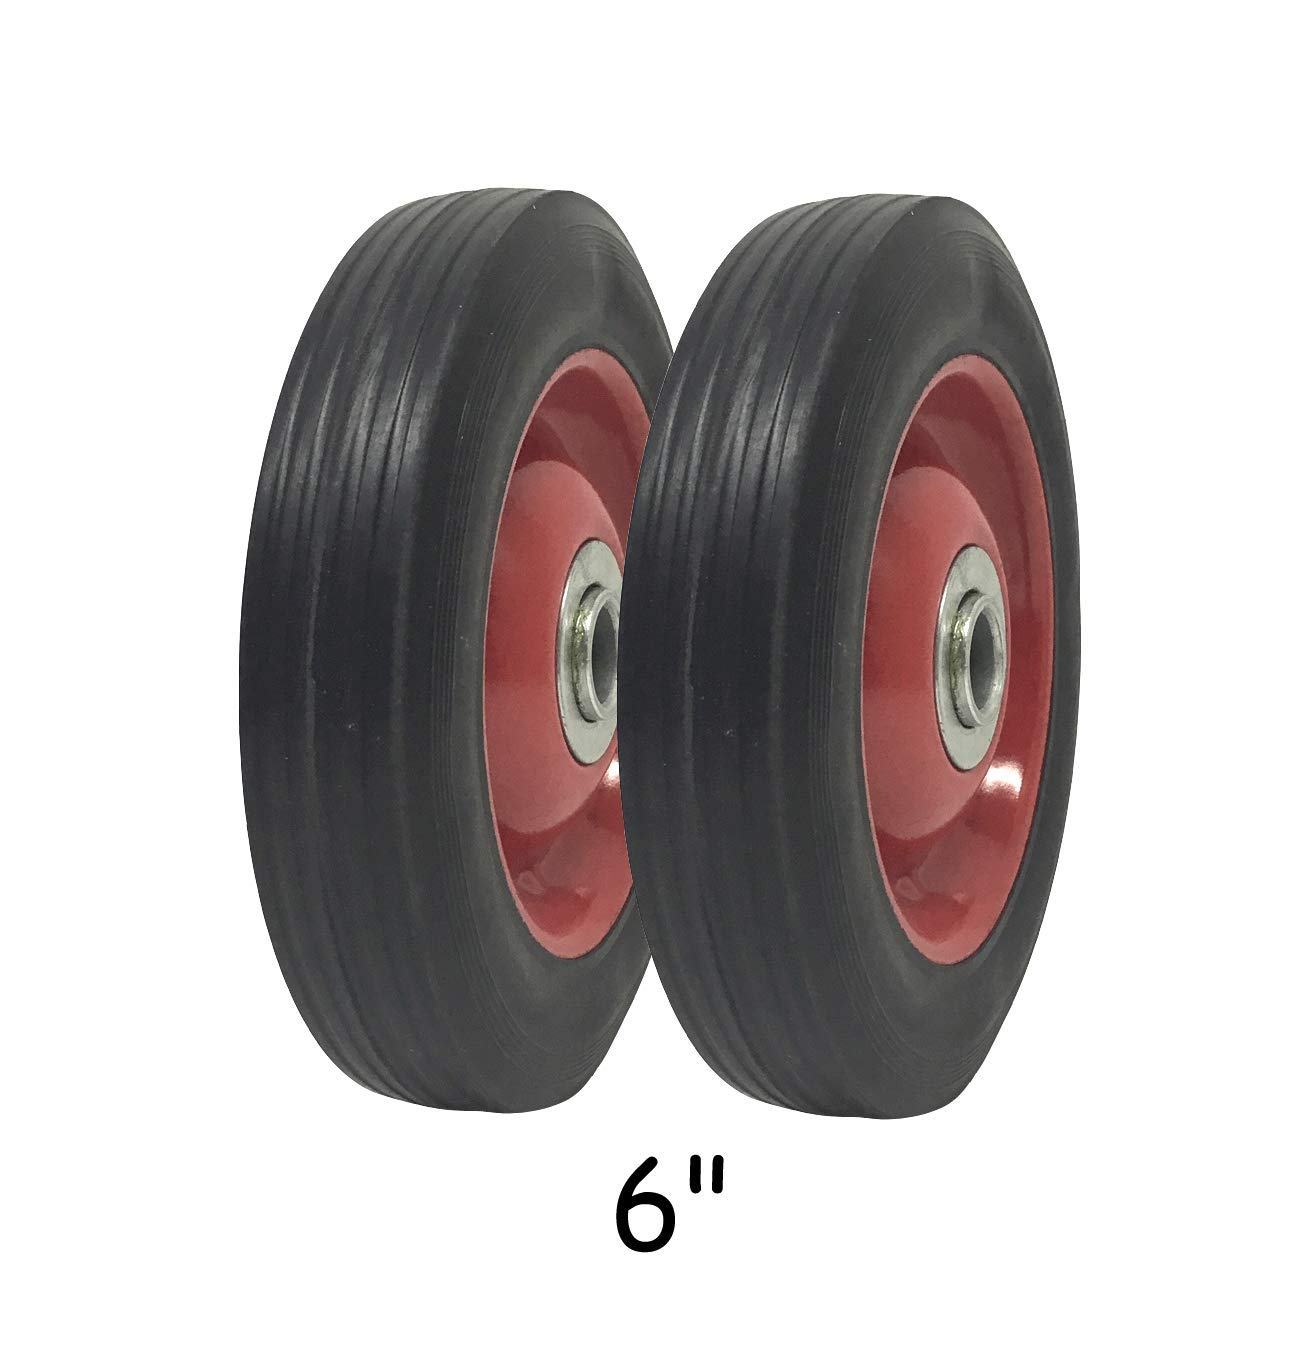 2 Pack - Solid Rubber Flat Free Tire 6'' x 1.5'' Hand Truck Wheel - 1.25'' Offset Hub - 5/8'' Axle - 350 lbs Capacity